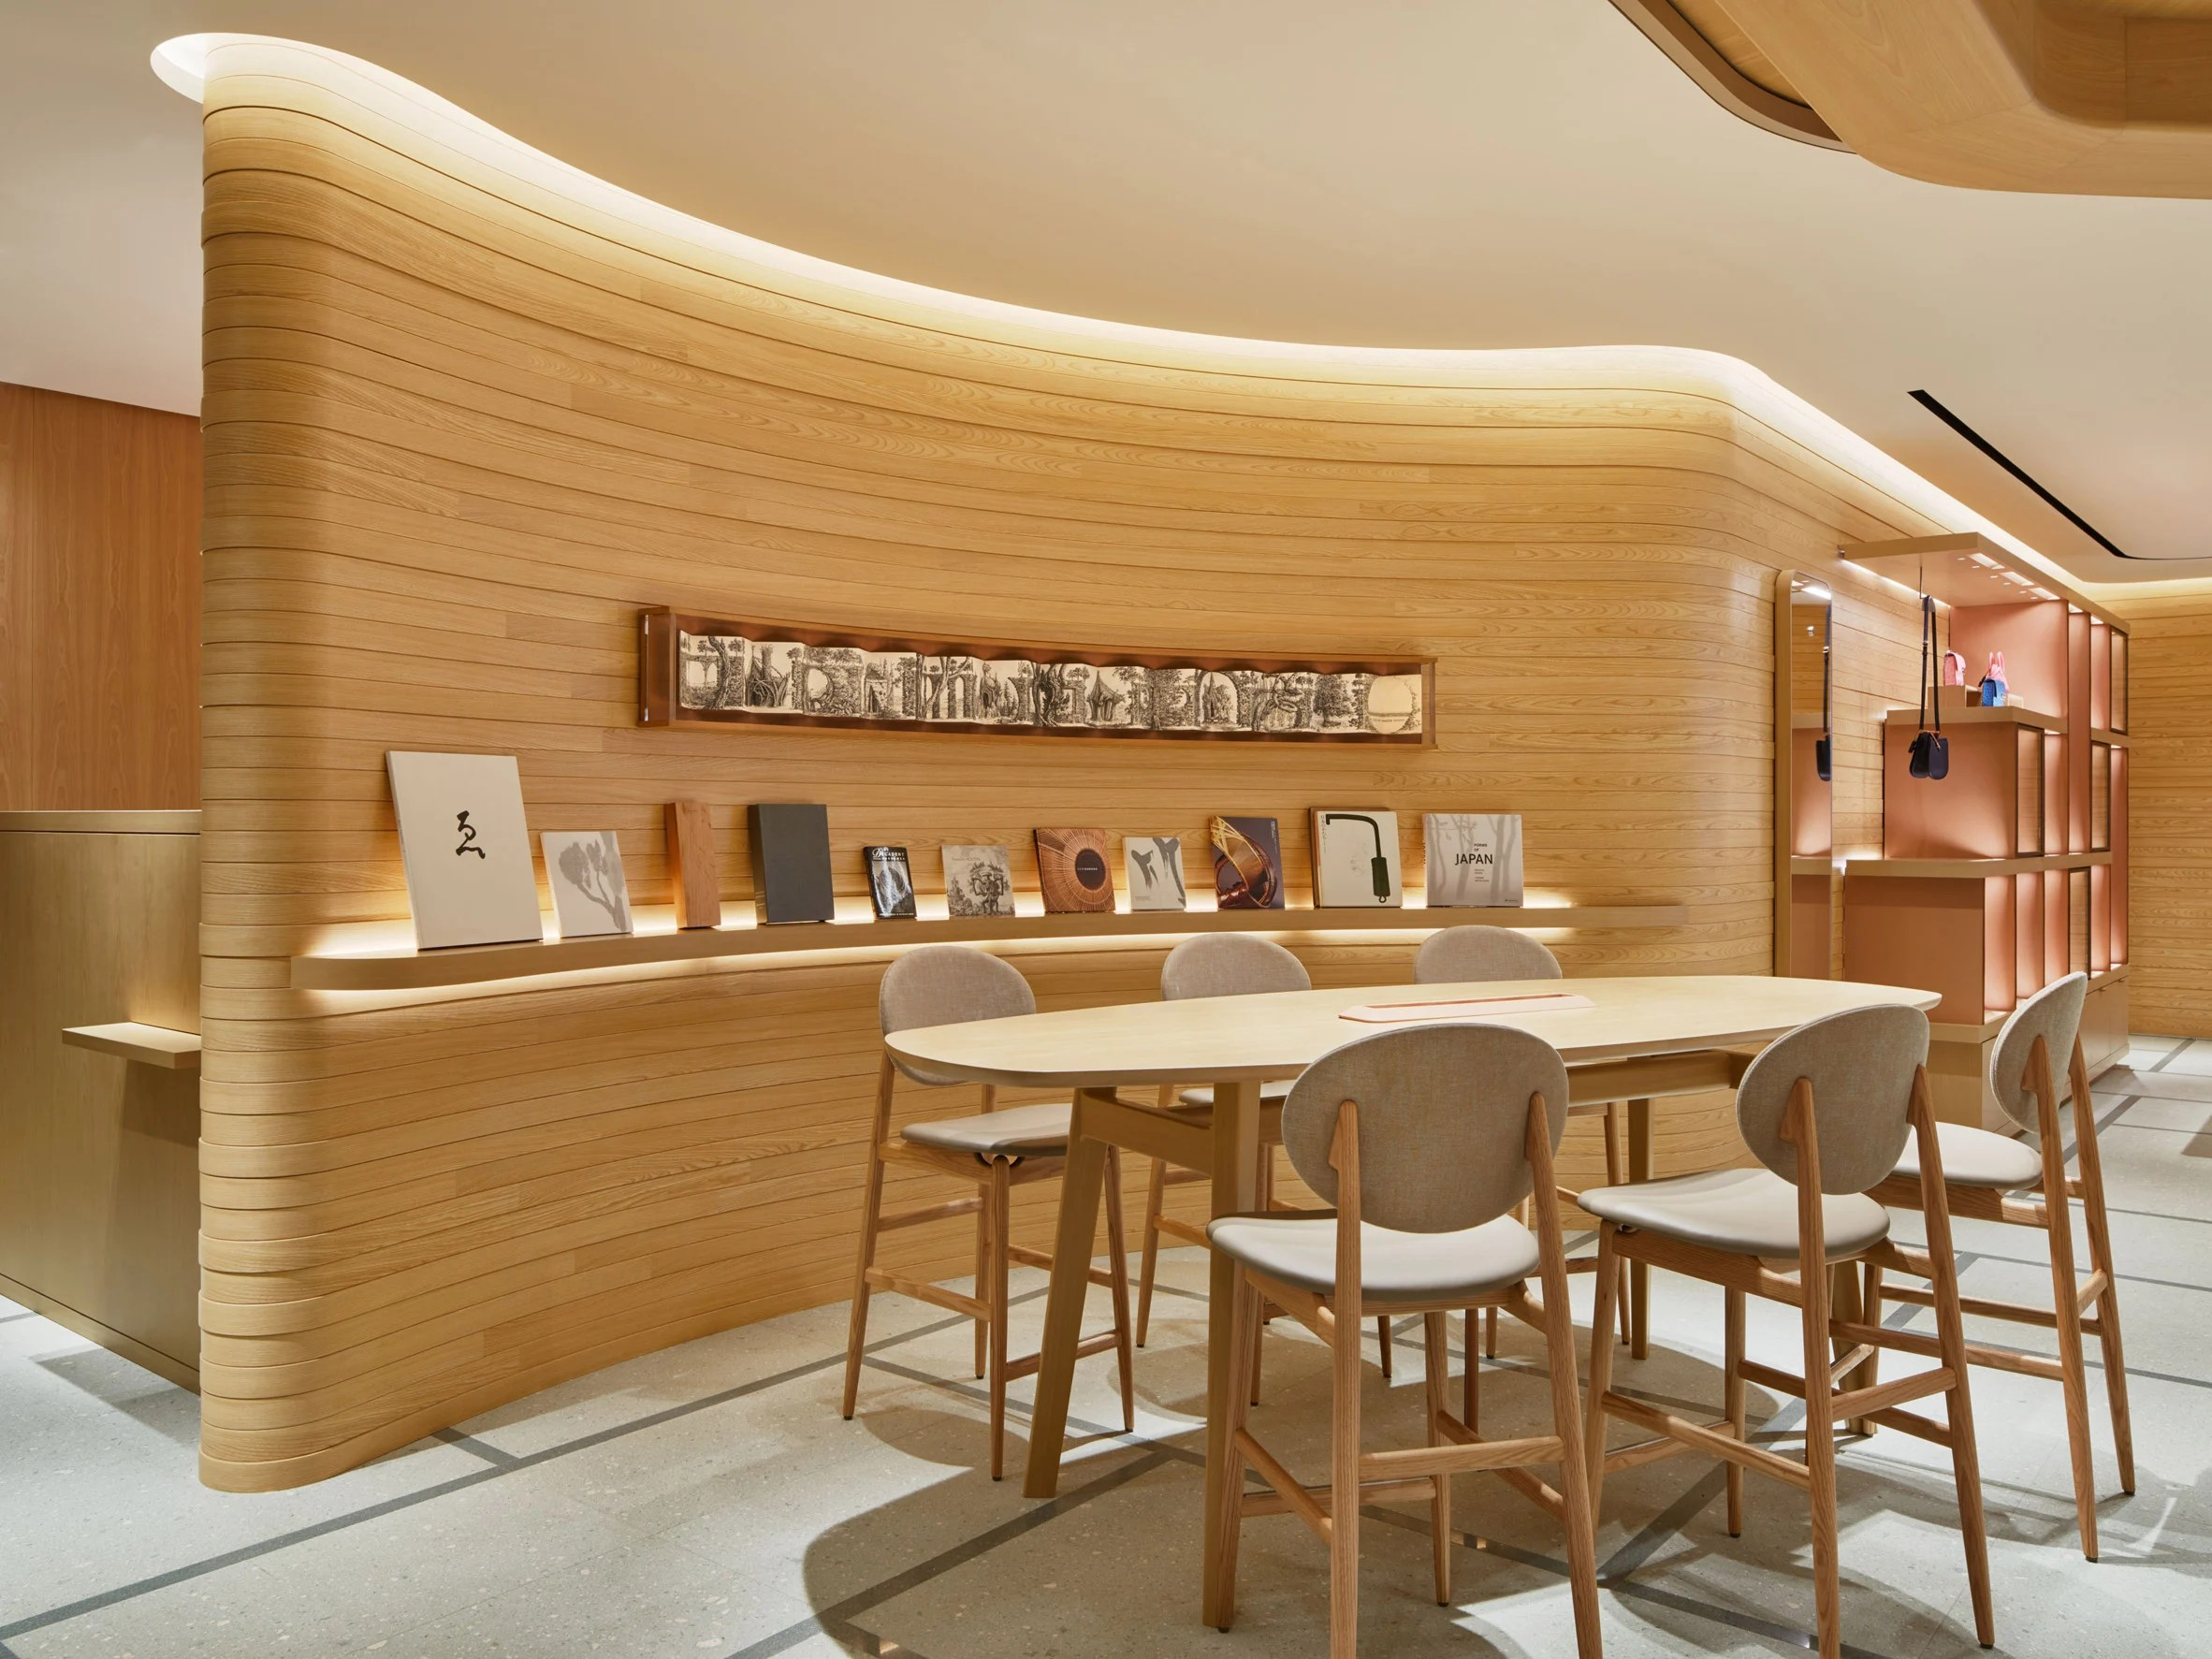 A shop interior with curved wooden walls